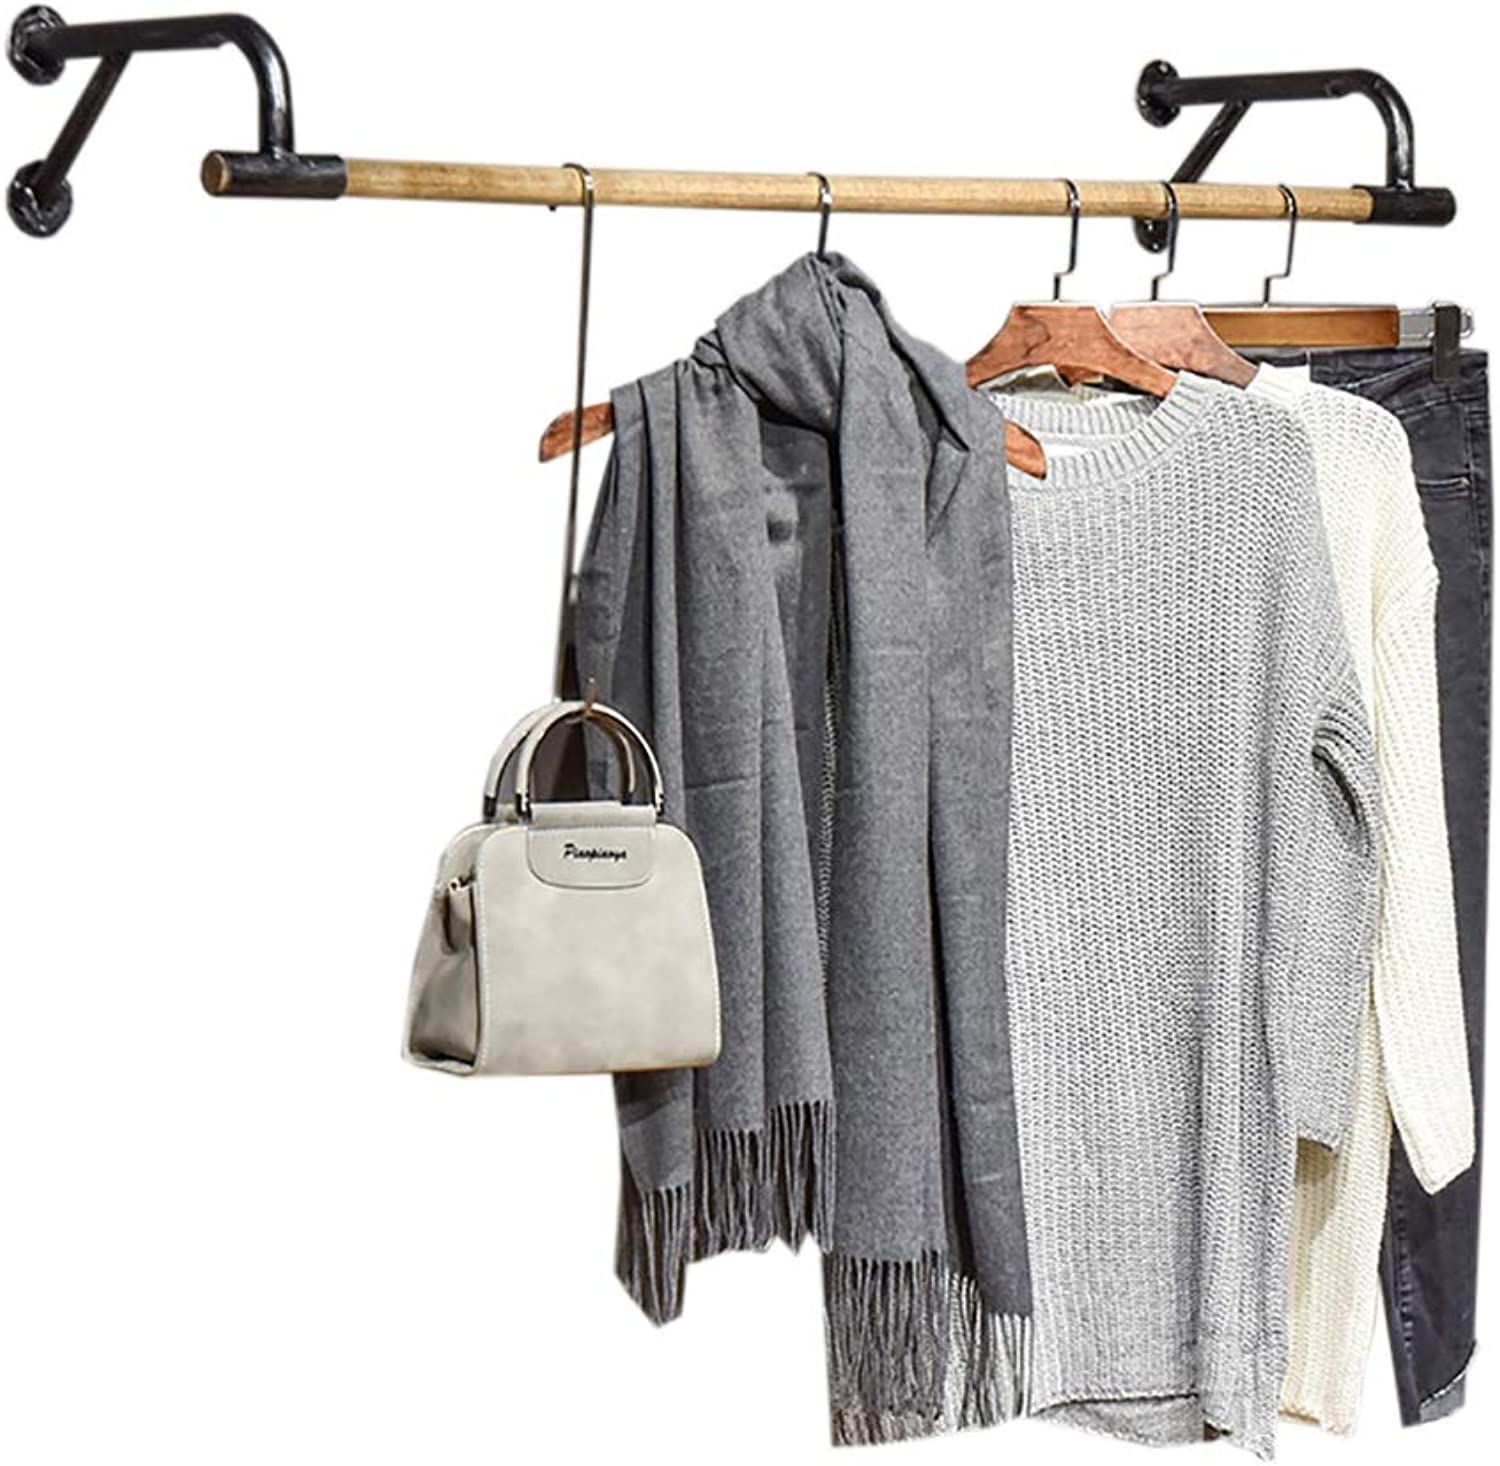 Retro Industrial Wind Multi-Function Wall Hanging Solid Wood Closet Shelf Clothing Rack Iron Hanger Book Stand Display Stand (Size   60  29  16cm)